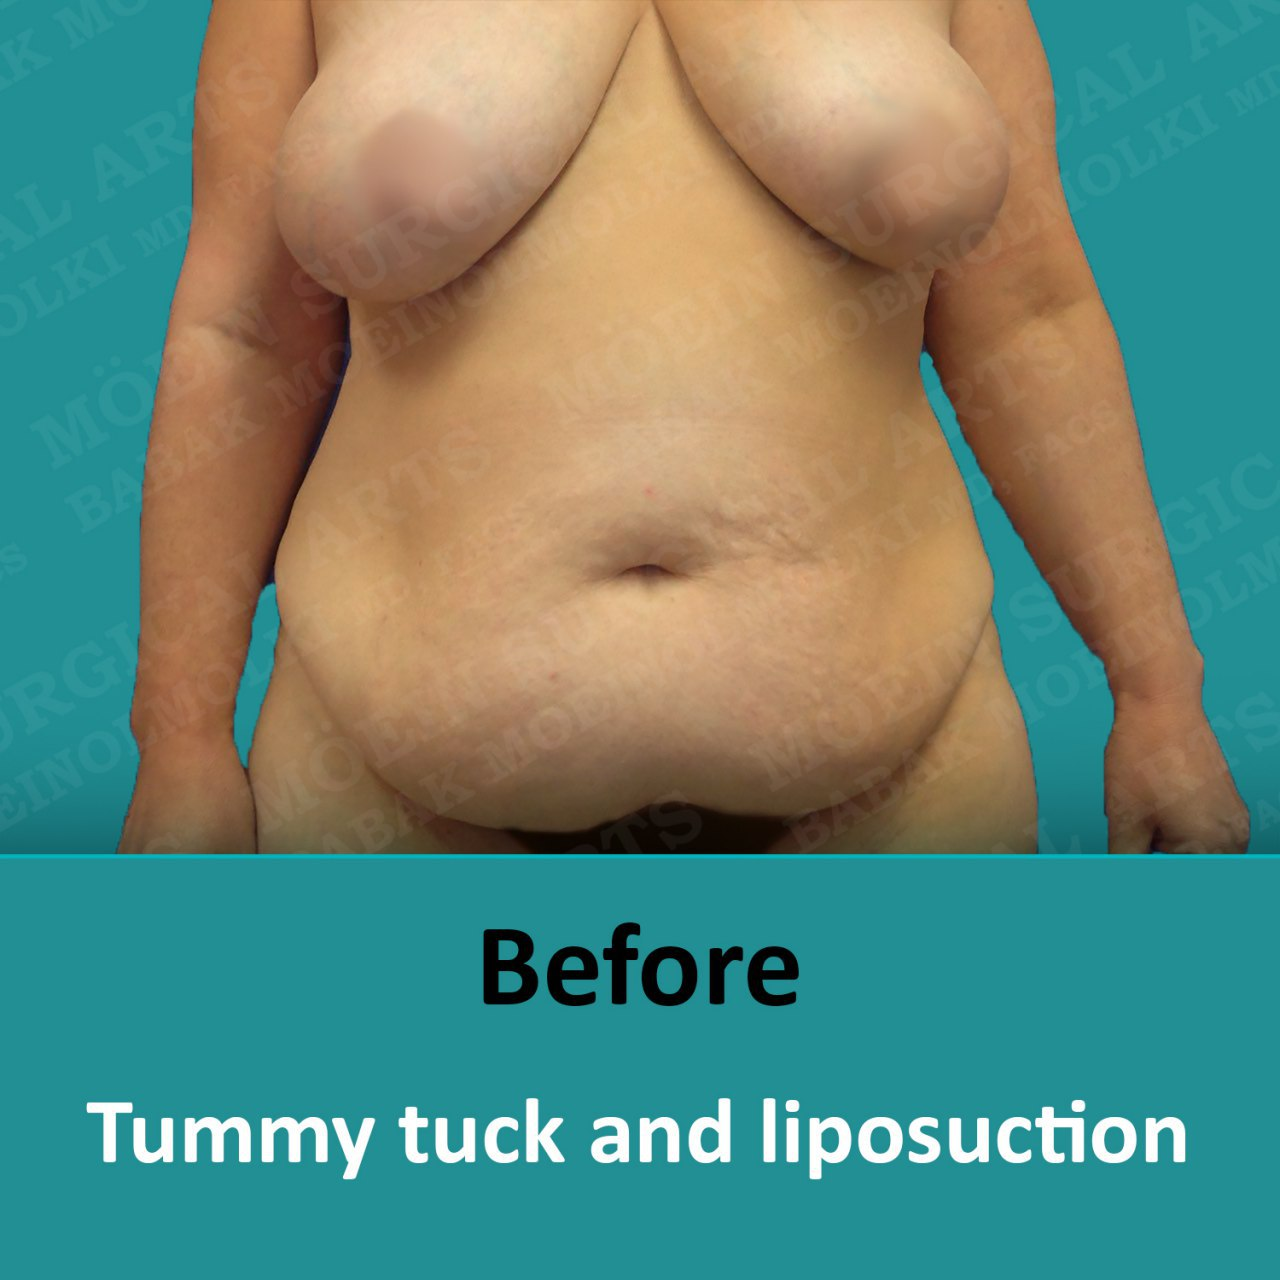 Tummy tuck liposuction before